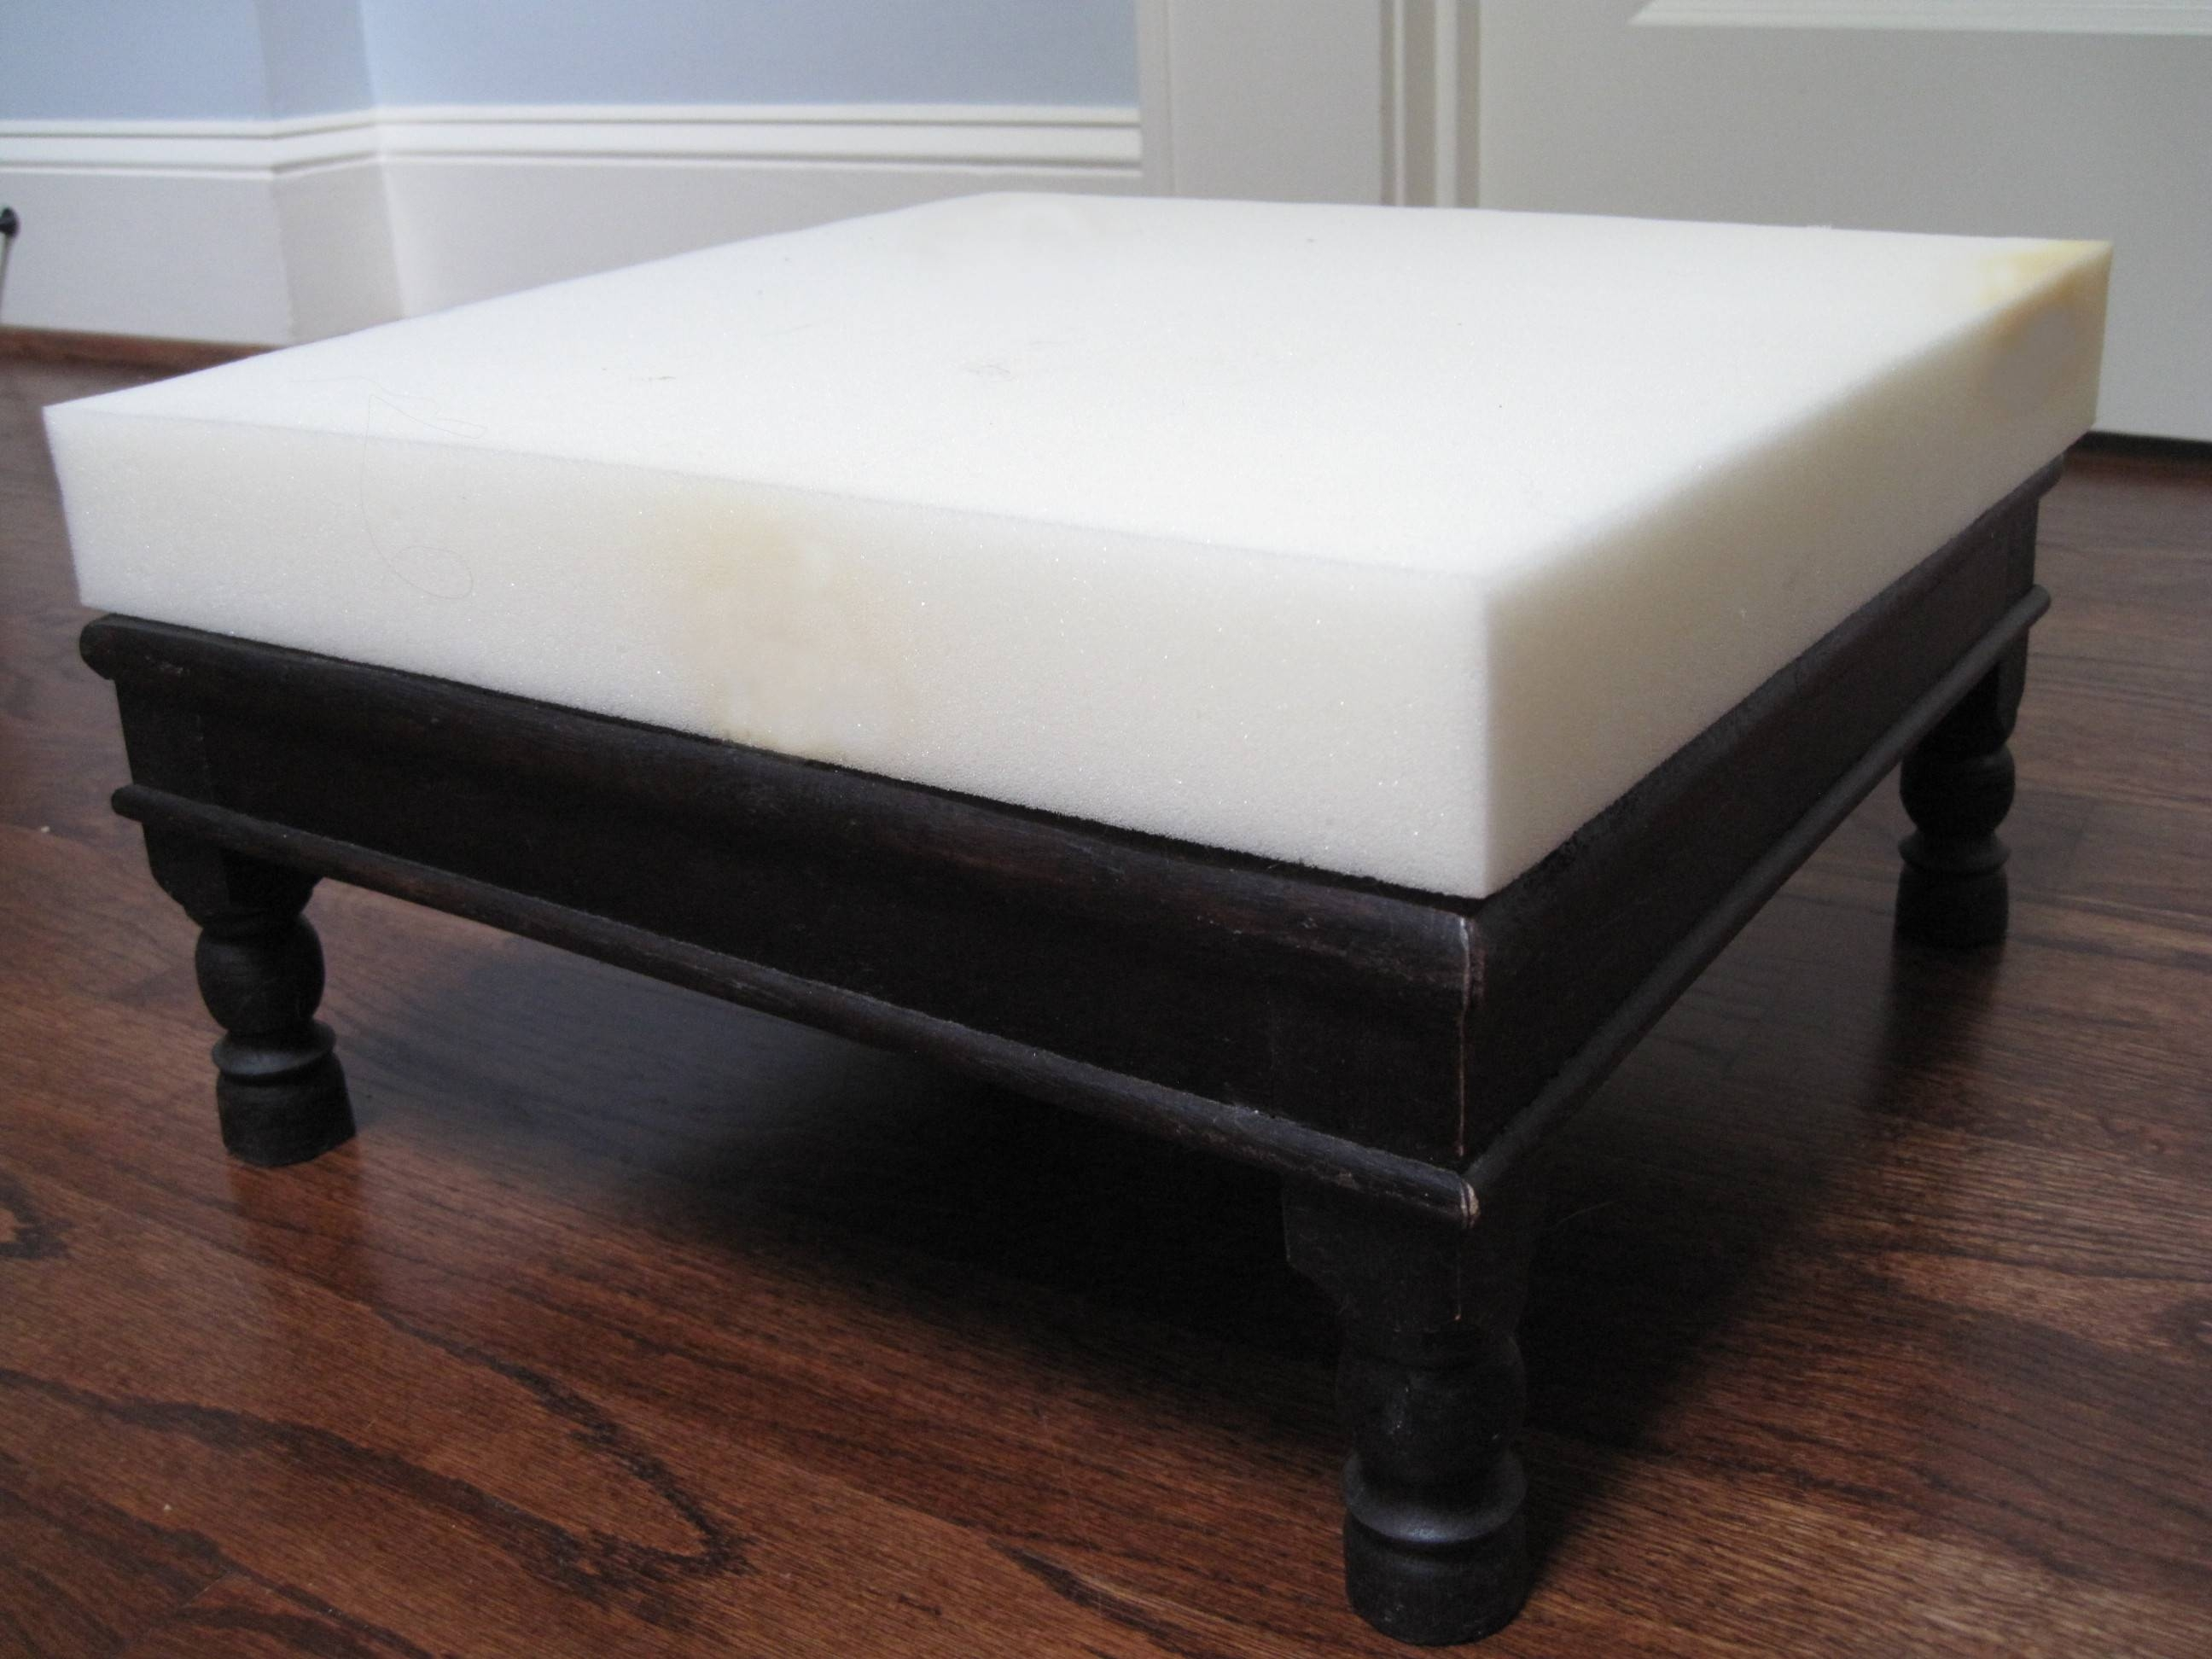 Diy: A No-Sew Upholstered Footstool | Tamara Heather Interior Design with regard to Upholstered Footstools (Image 4 of 30)